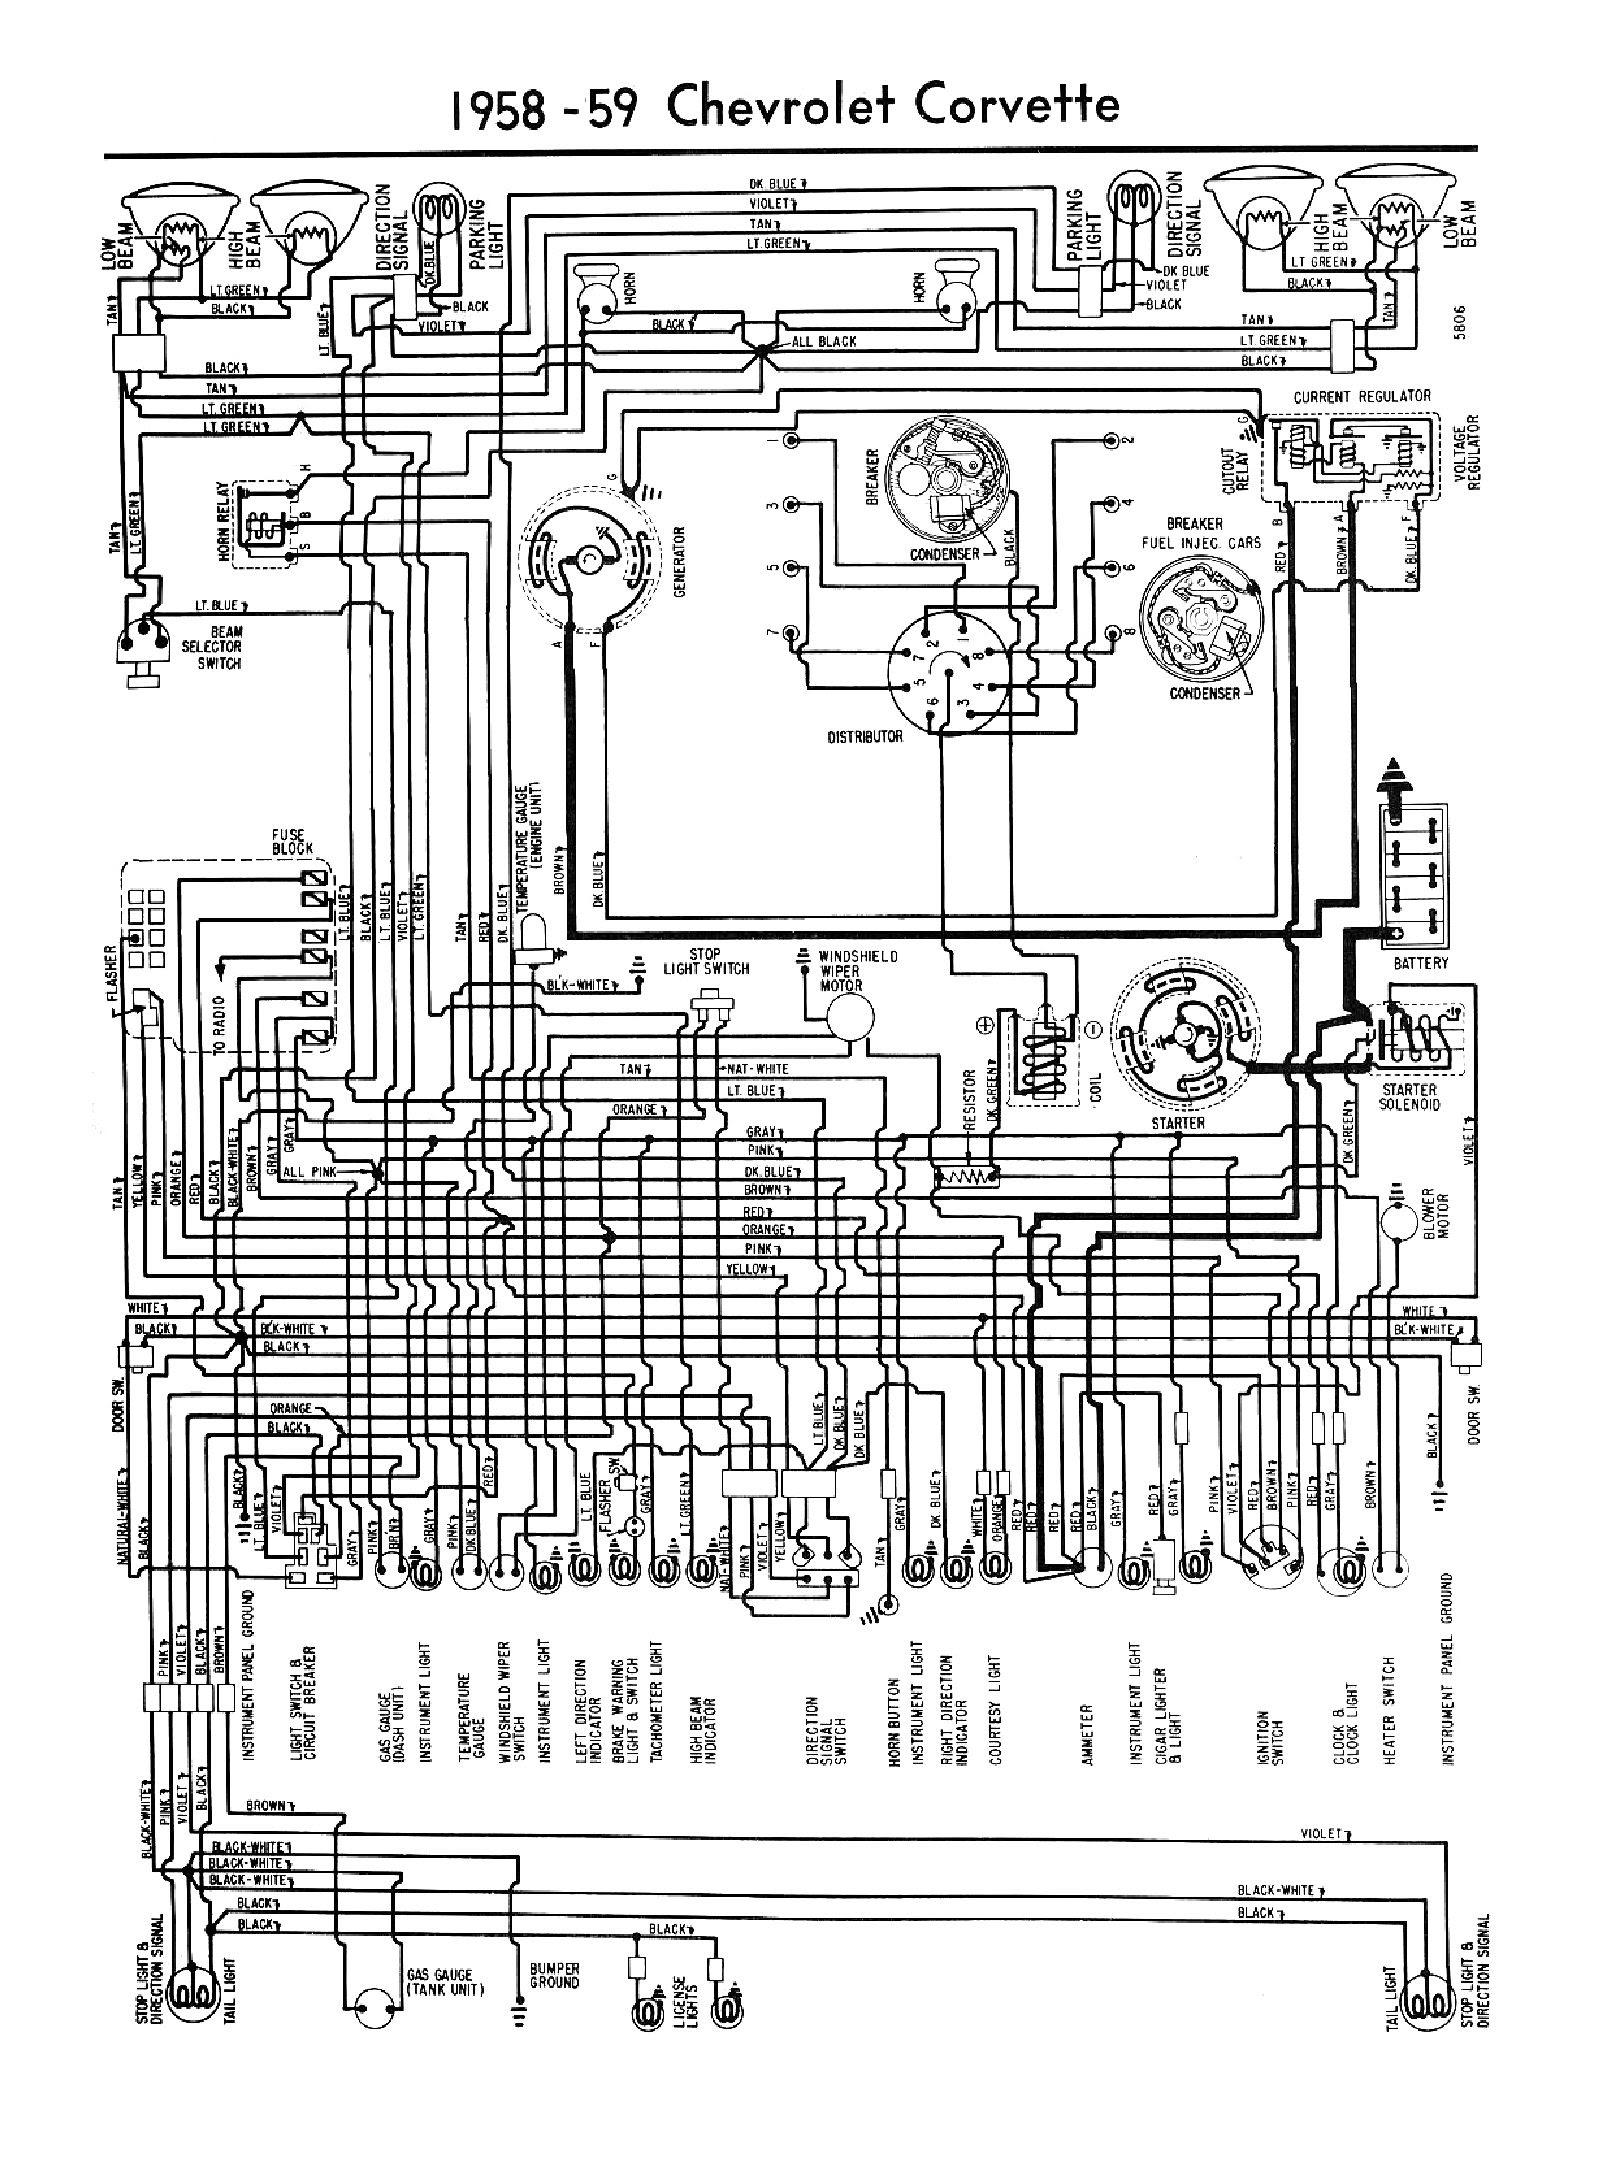 1960 Corvette Wiring Diagram Wiring Diagram Motor Motor Frankmotors Es